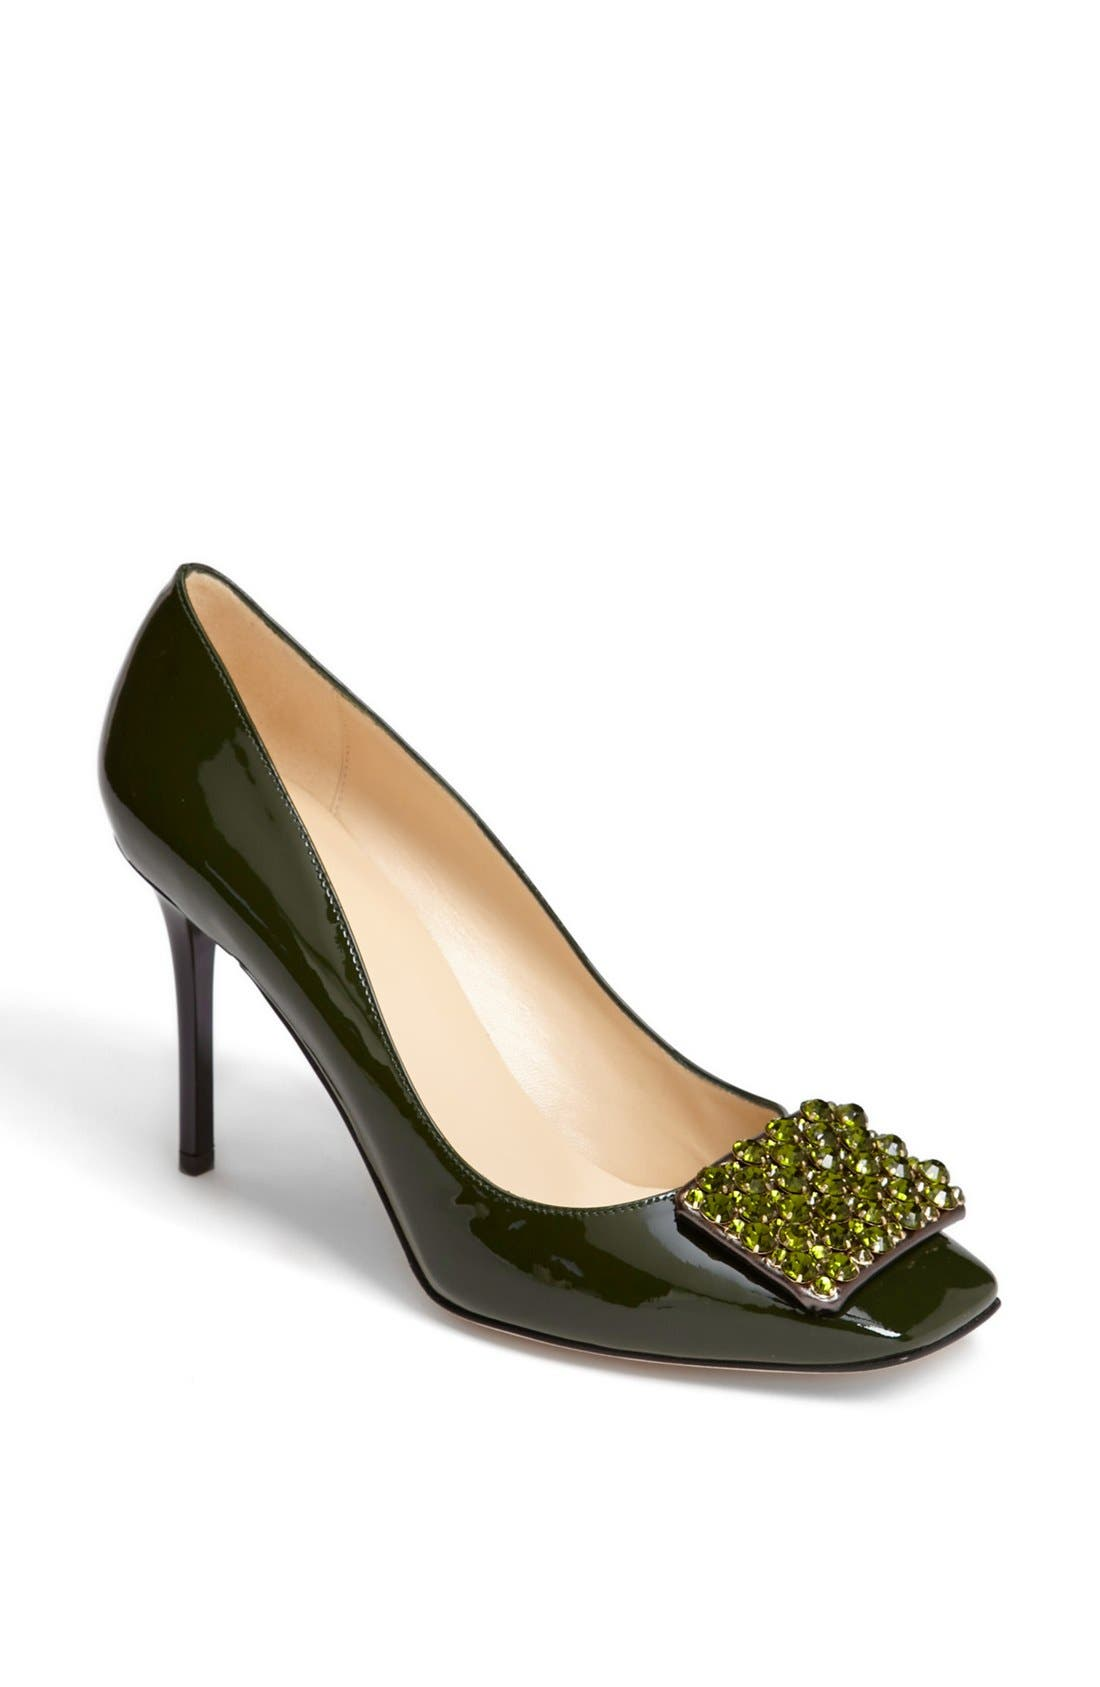 Main Image - kate spade new york 'happy' pump